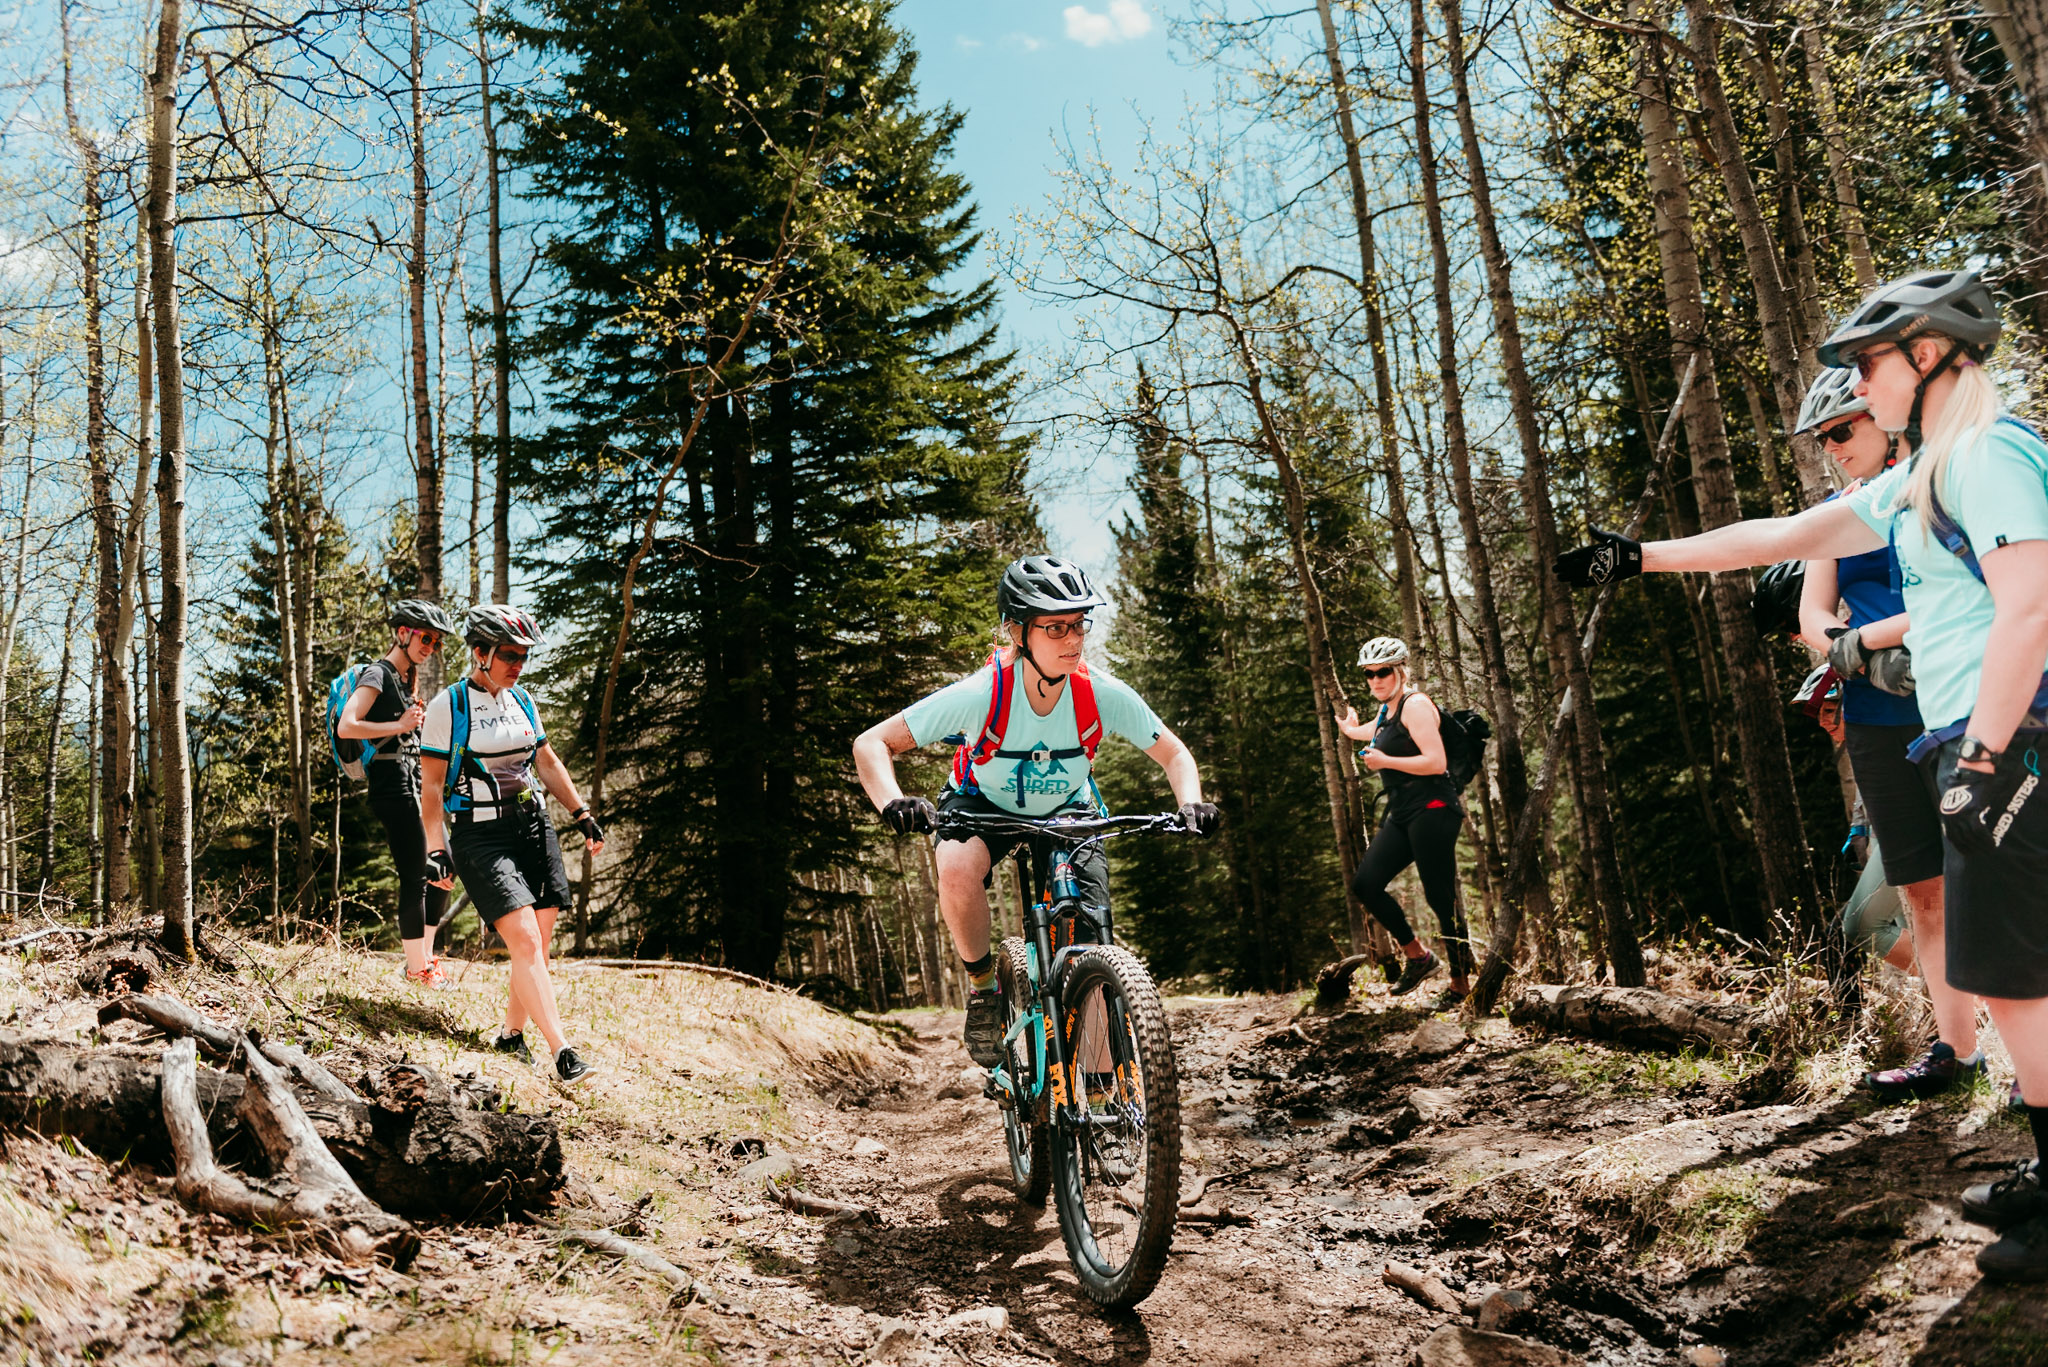 May 27, 2019 - Shred Sisters - Bragg Creek-51.jpg